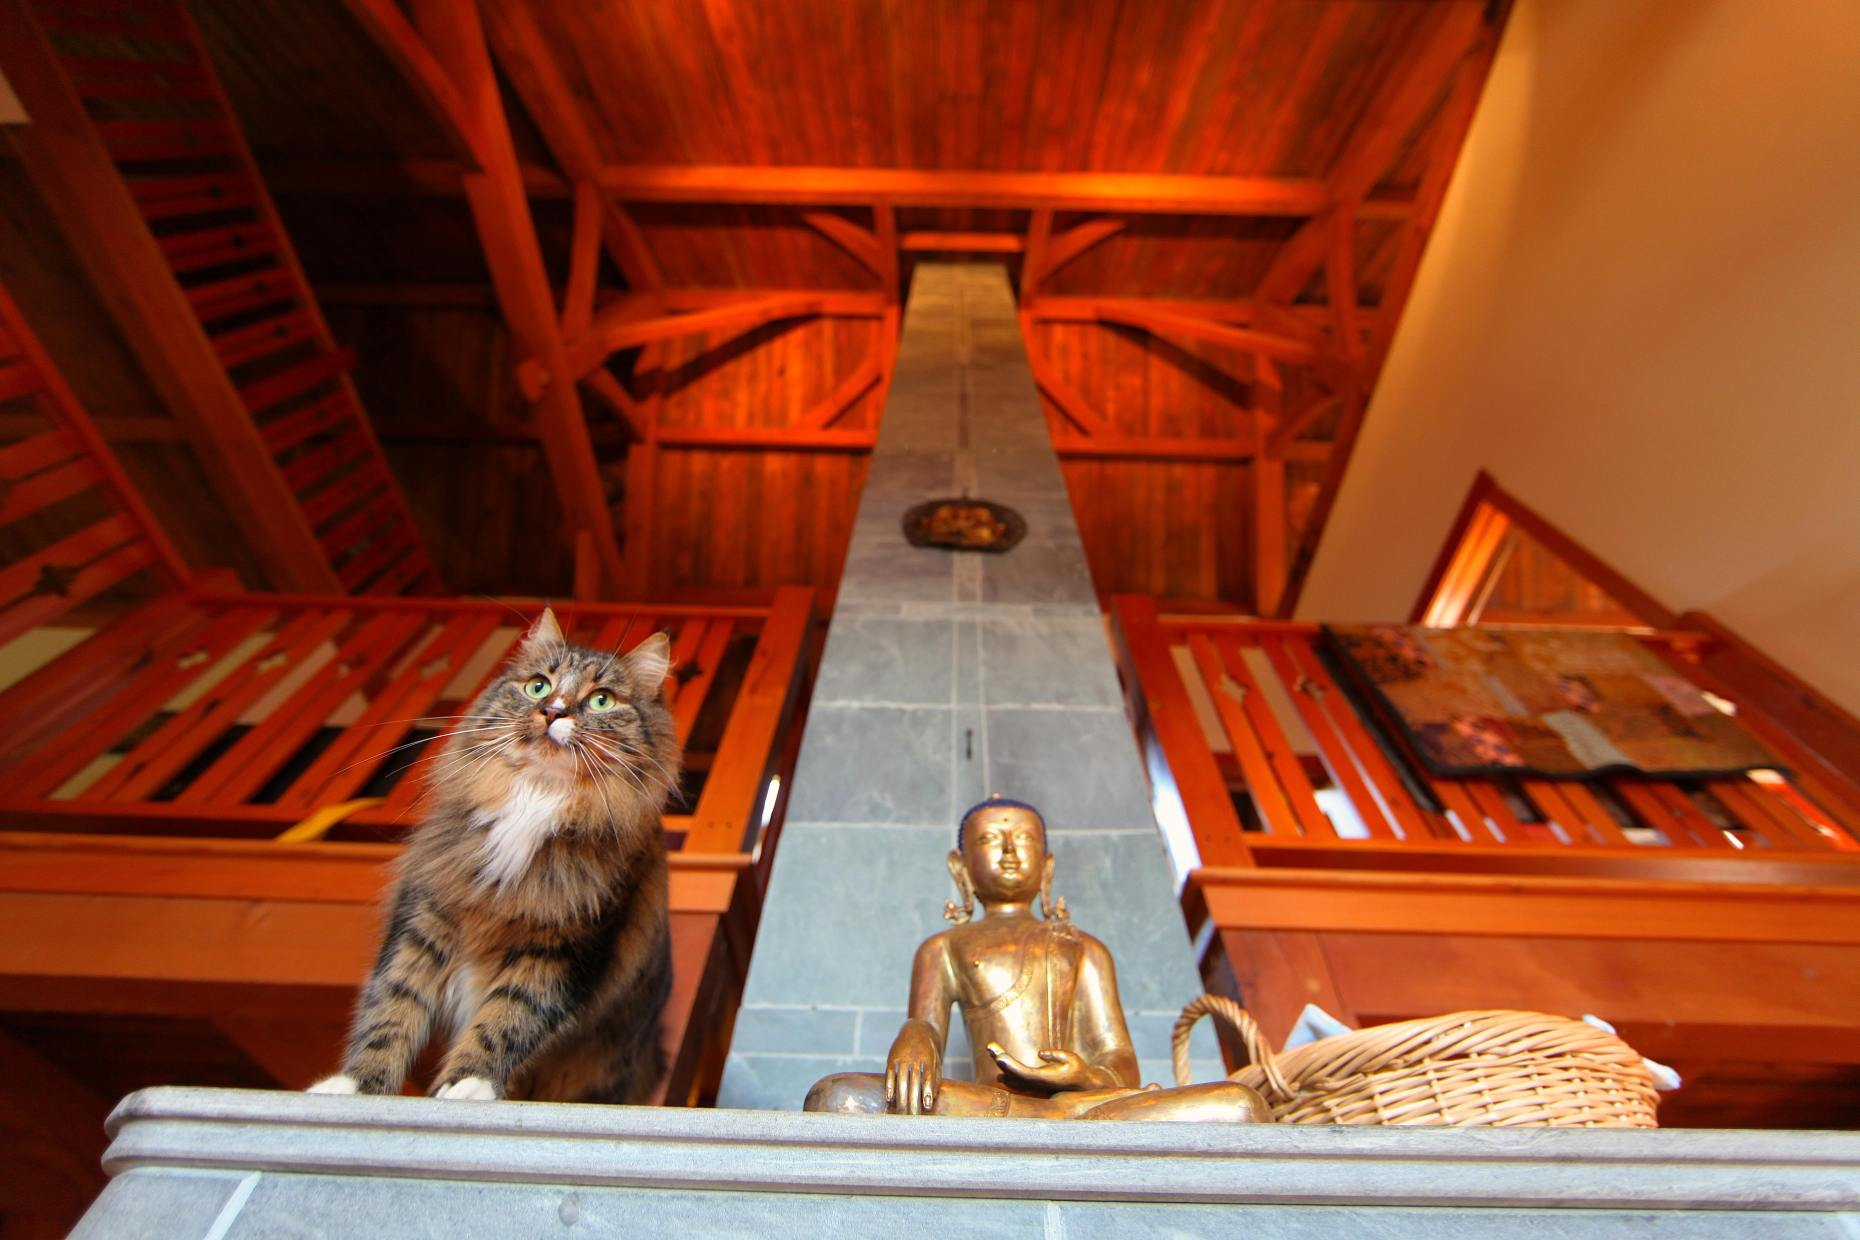 She's Not Very Buddha-like. See The Beams Way Up High? Photo @ Liesl Clark